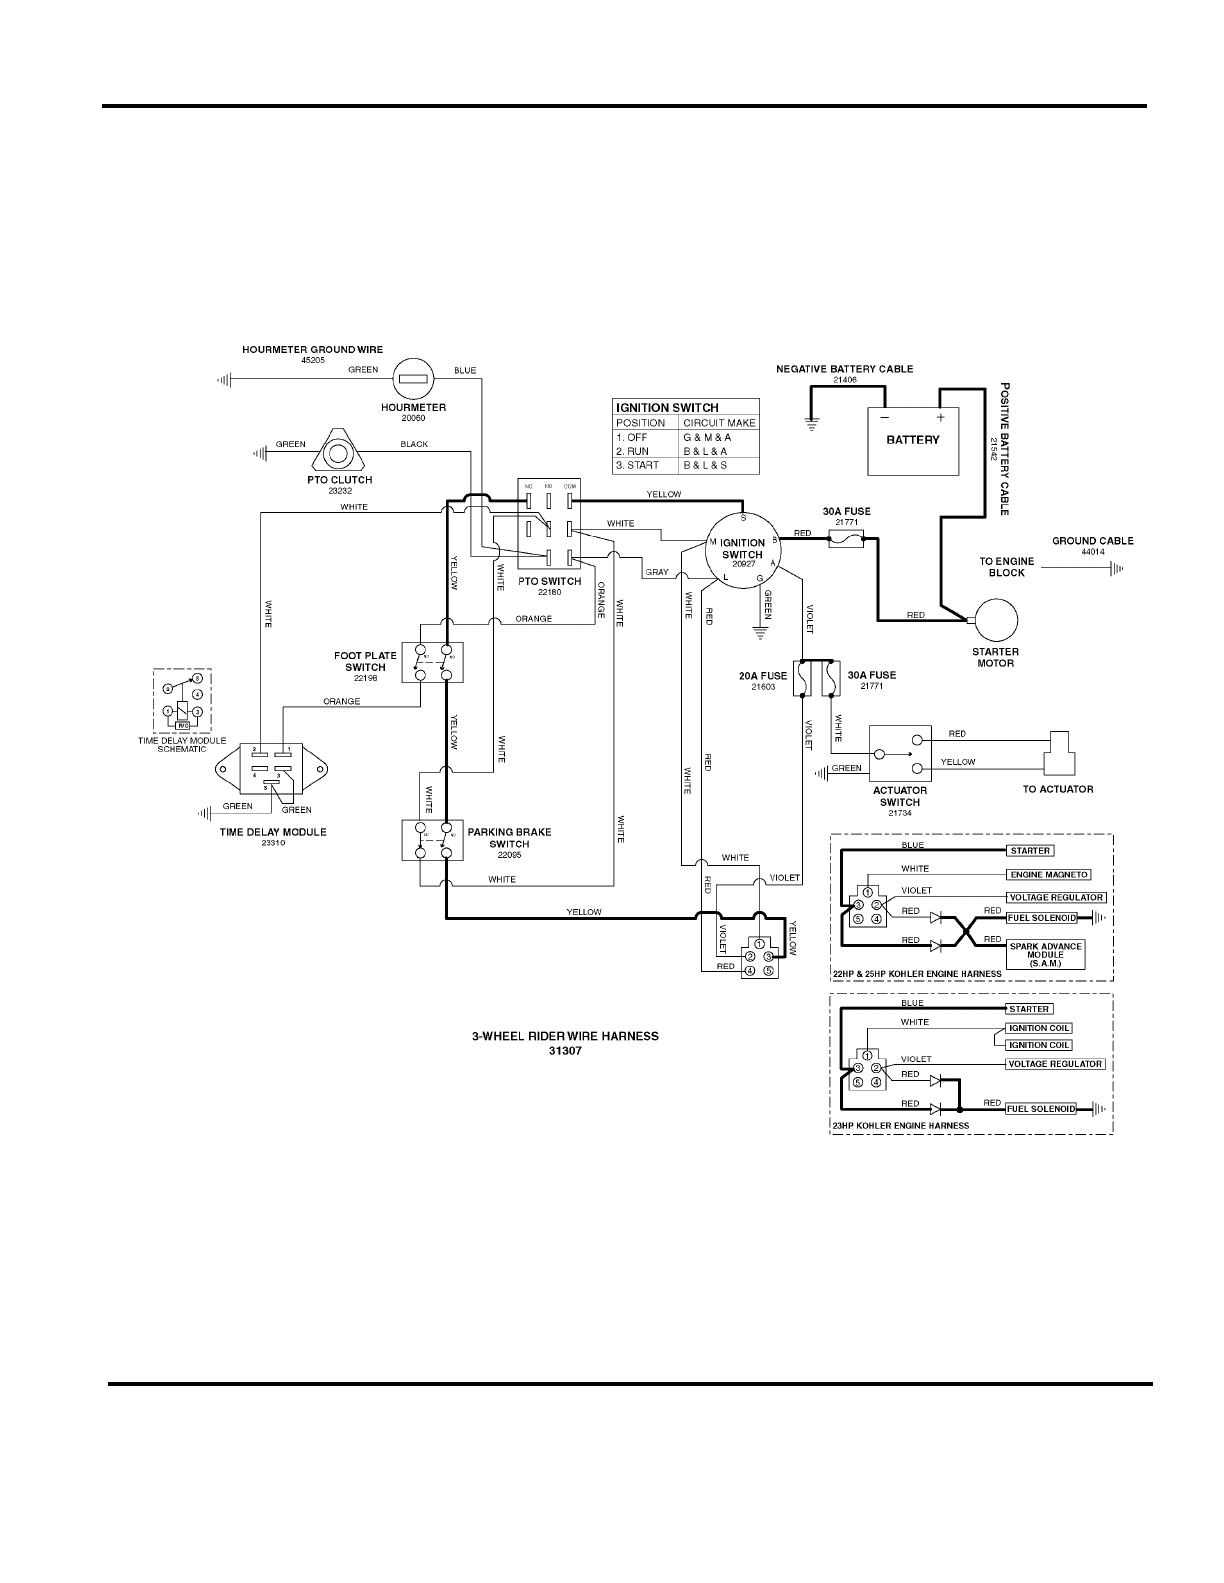 Ferris Lawn Mower Wiring Diagram Wiring Diagram